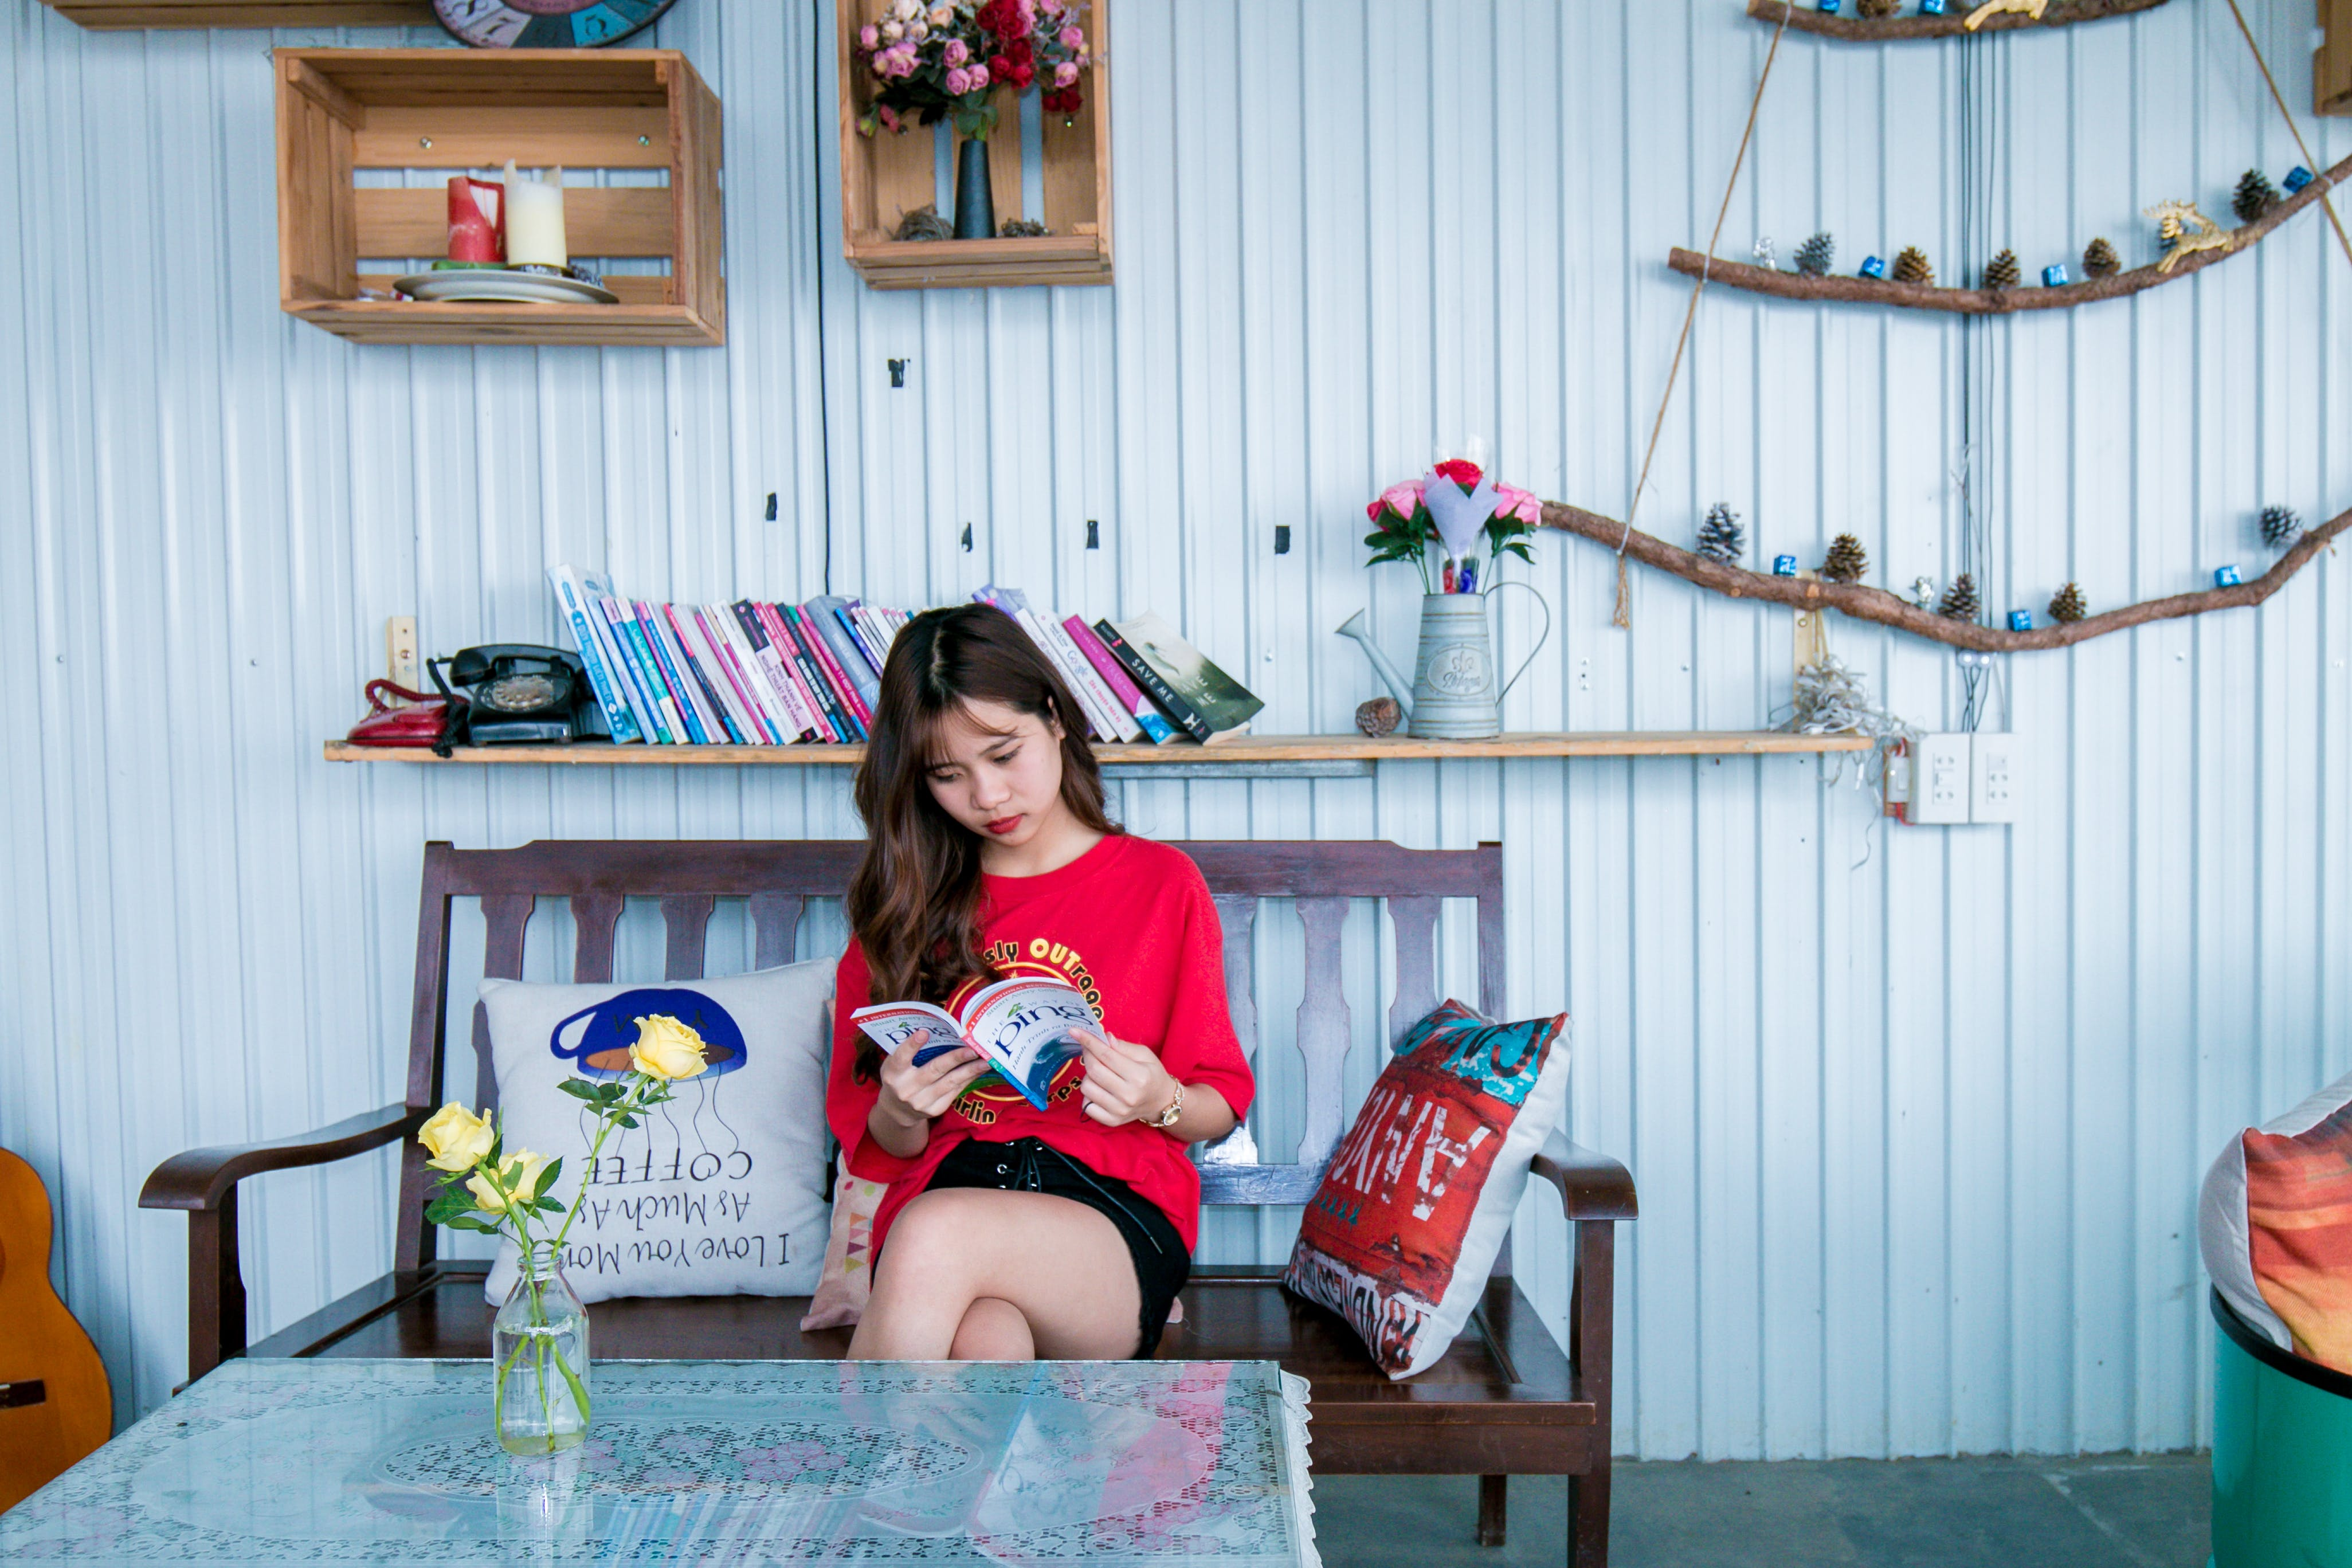 Woman in Red Shirt Reading Book While Sitting on Bench